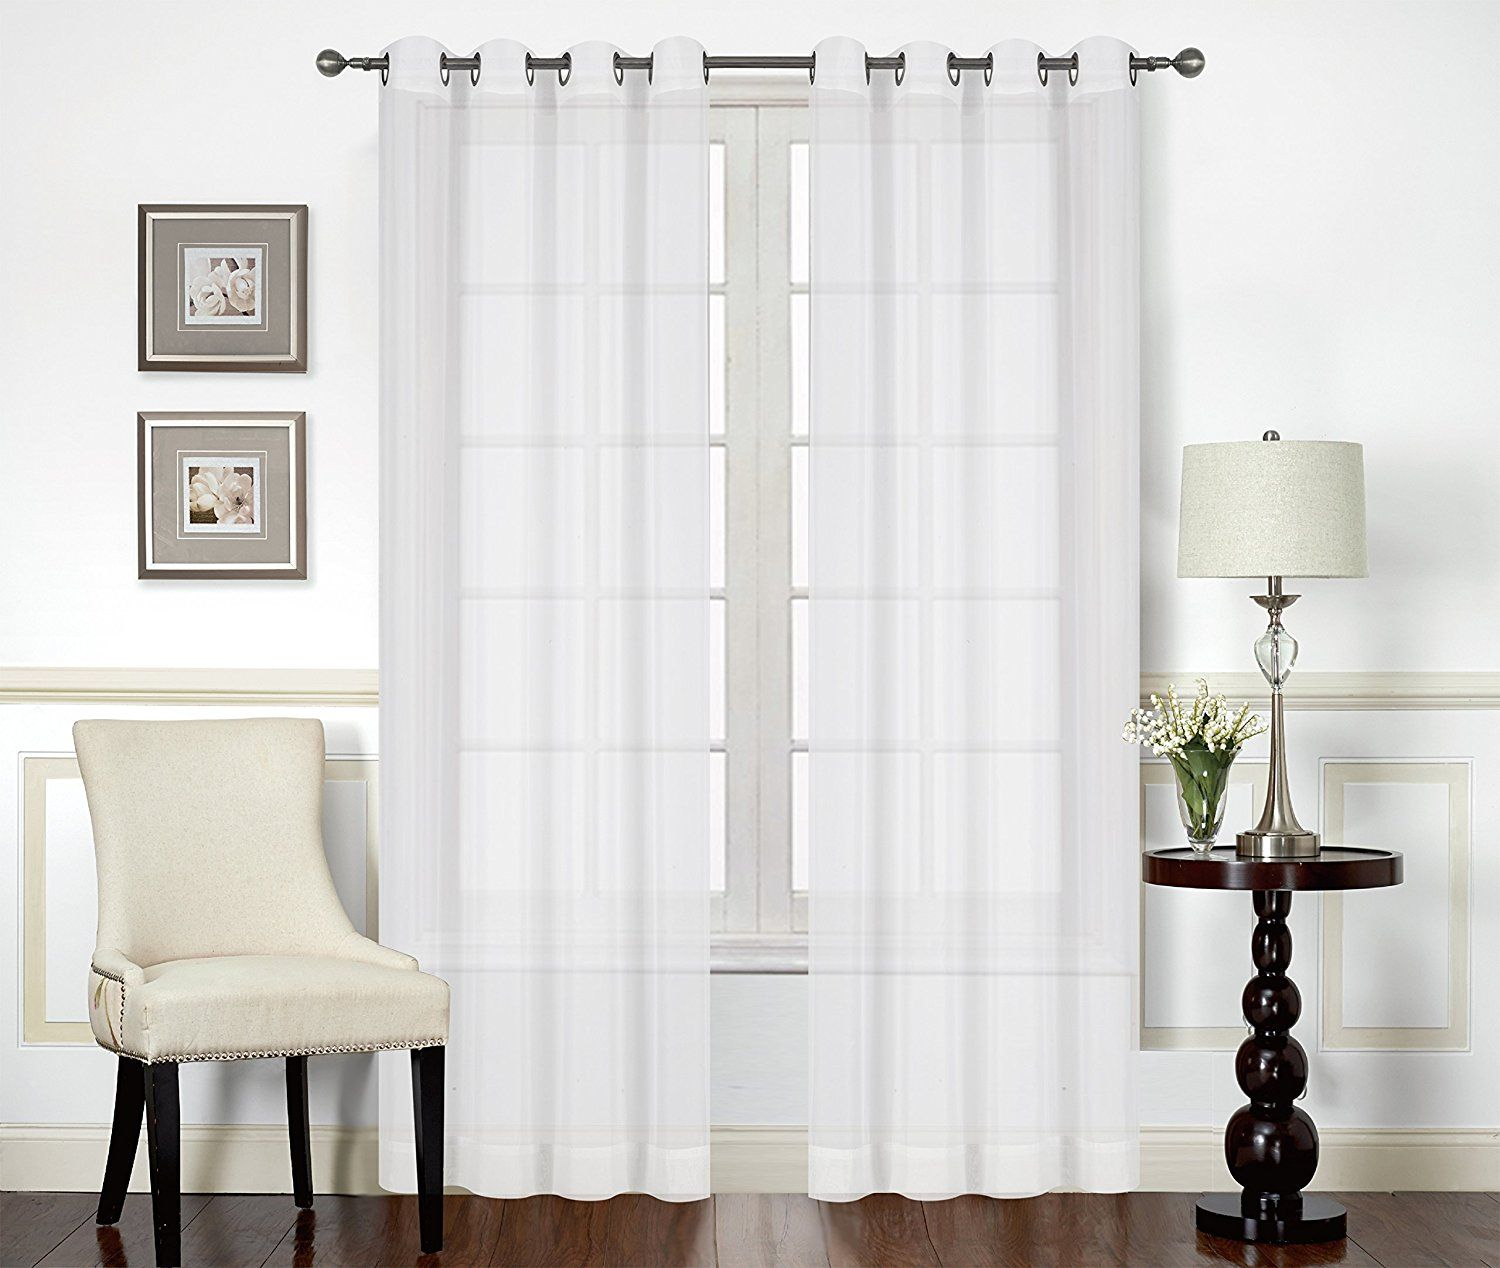 787c44e2494 Premium White Sheer Curtains Sheer Voile White Luxurious High Thread Window  Groomet Curtains 2 Panel Set 52 by 84 Inches by Utopia Bedding